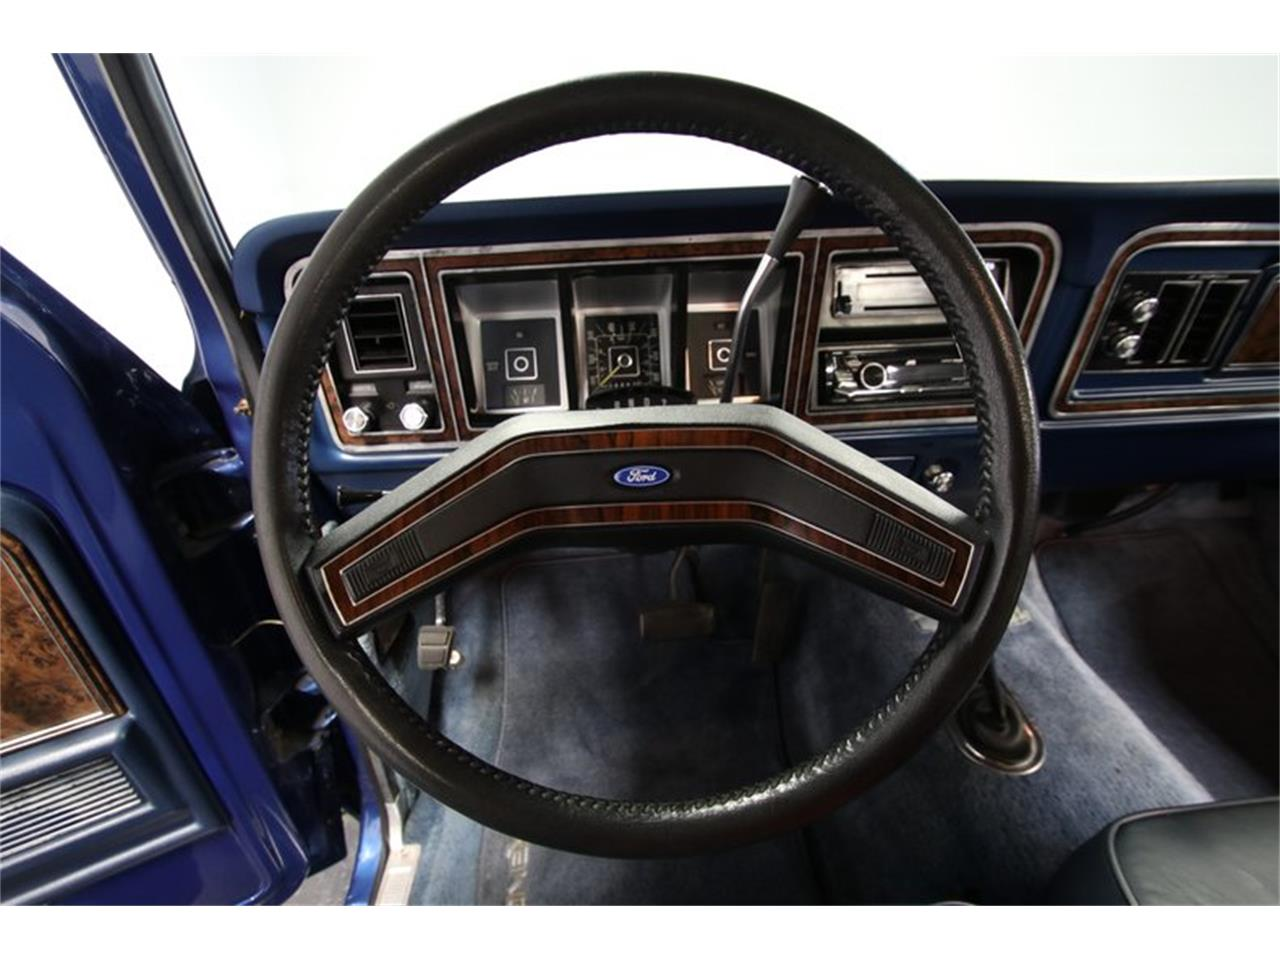 Large Picture of 1979 Ford F150 located in Concord North Carolina - $33,995.00 Offered by Streetside Classics - Charlotte - PW7U